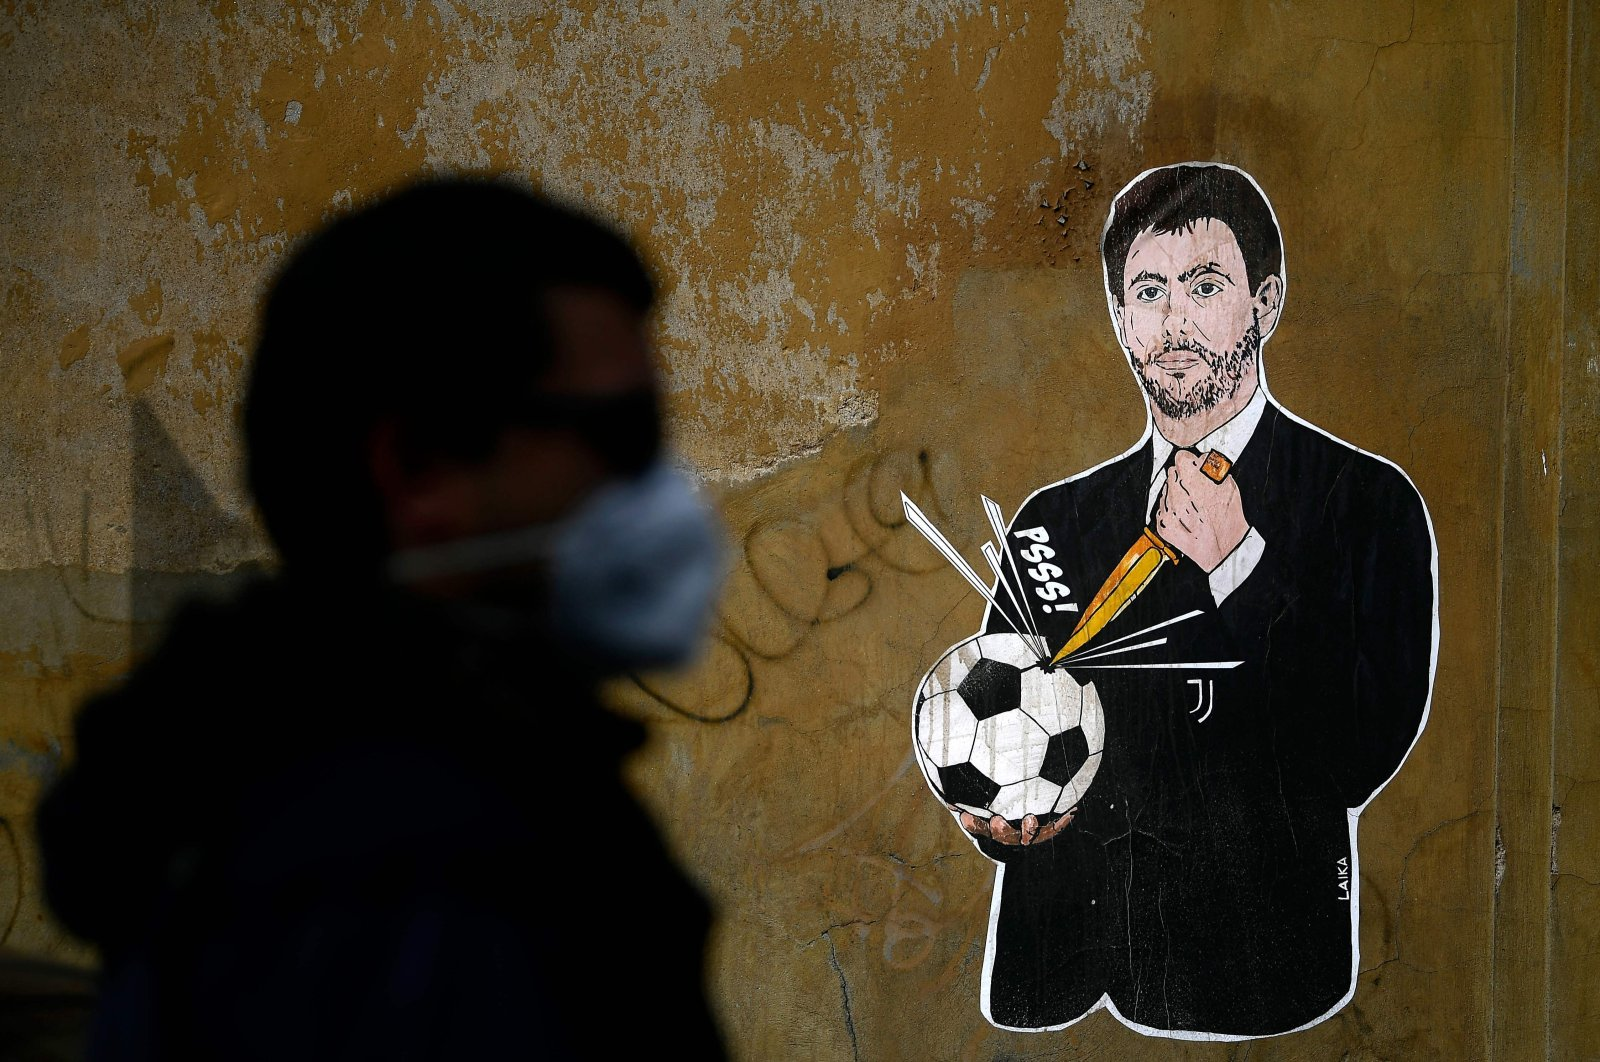 """A man walks past a graffiti entitled """"The failed coup"""" (Il Golpe Fallito) by Italian artist Laika, showing Juventus President Andrea Agnelli puncturing a football, near the headquarters of the Italian Football Federation, Rome, Italy, April 21, 2021."""